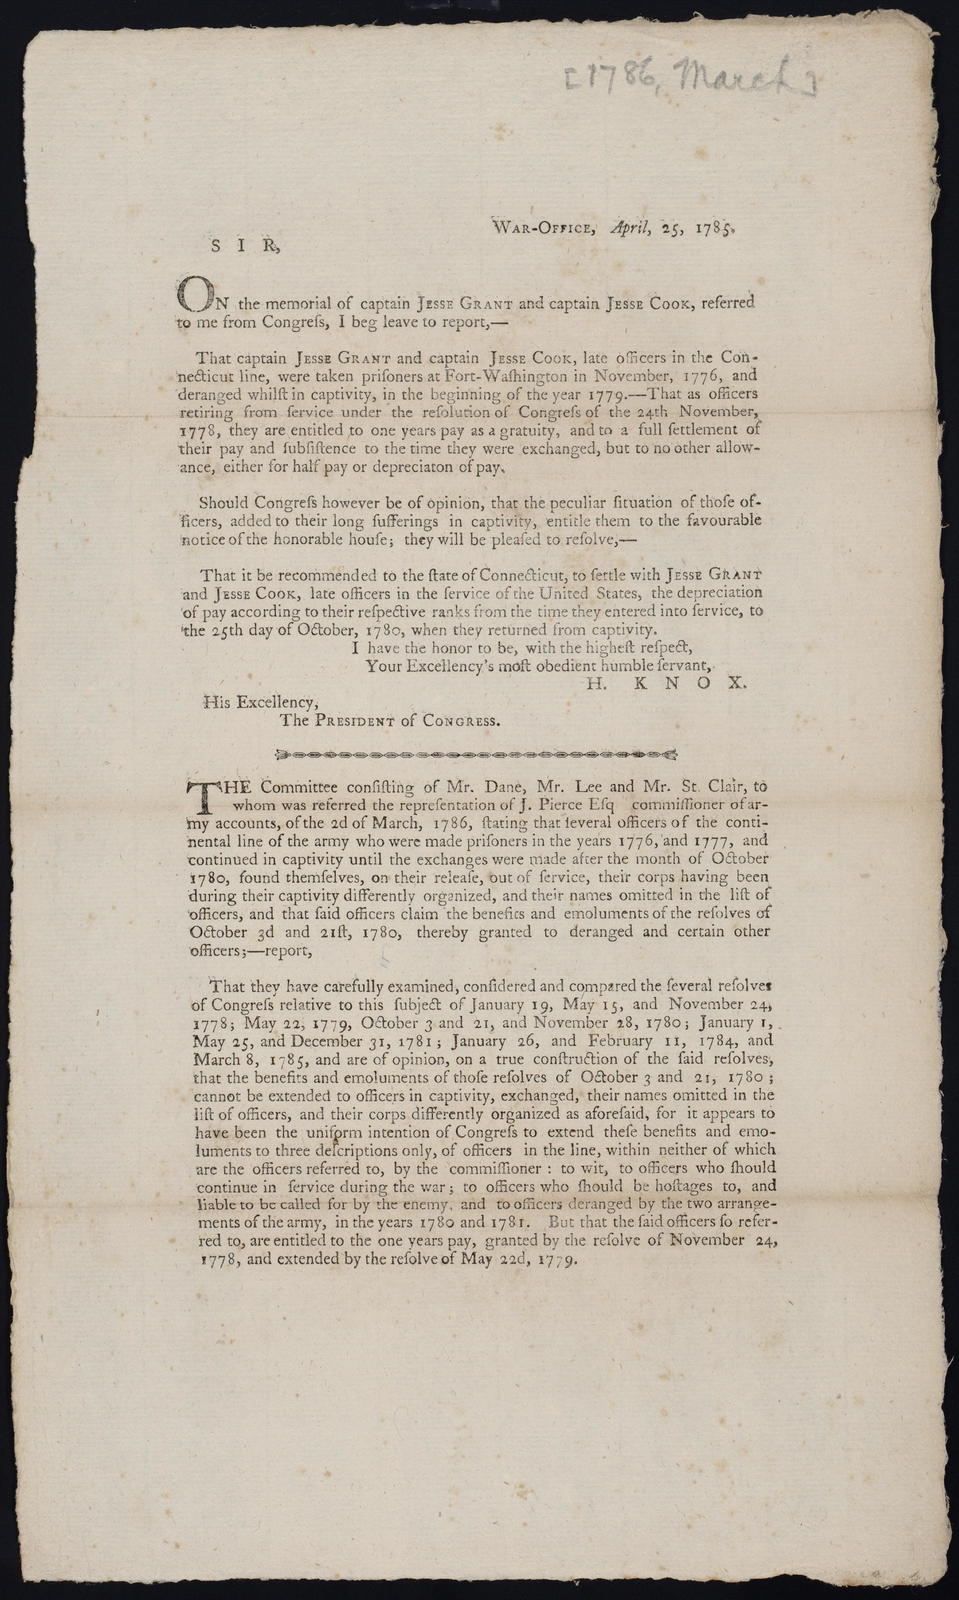 War-Office, April 25, 1785 : Sir, On the memorial of Captain Jesse Grant and Captain Jesse Cook, referred to me from Congress, I beg leave to report ...